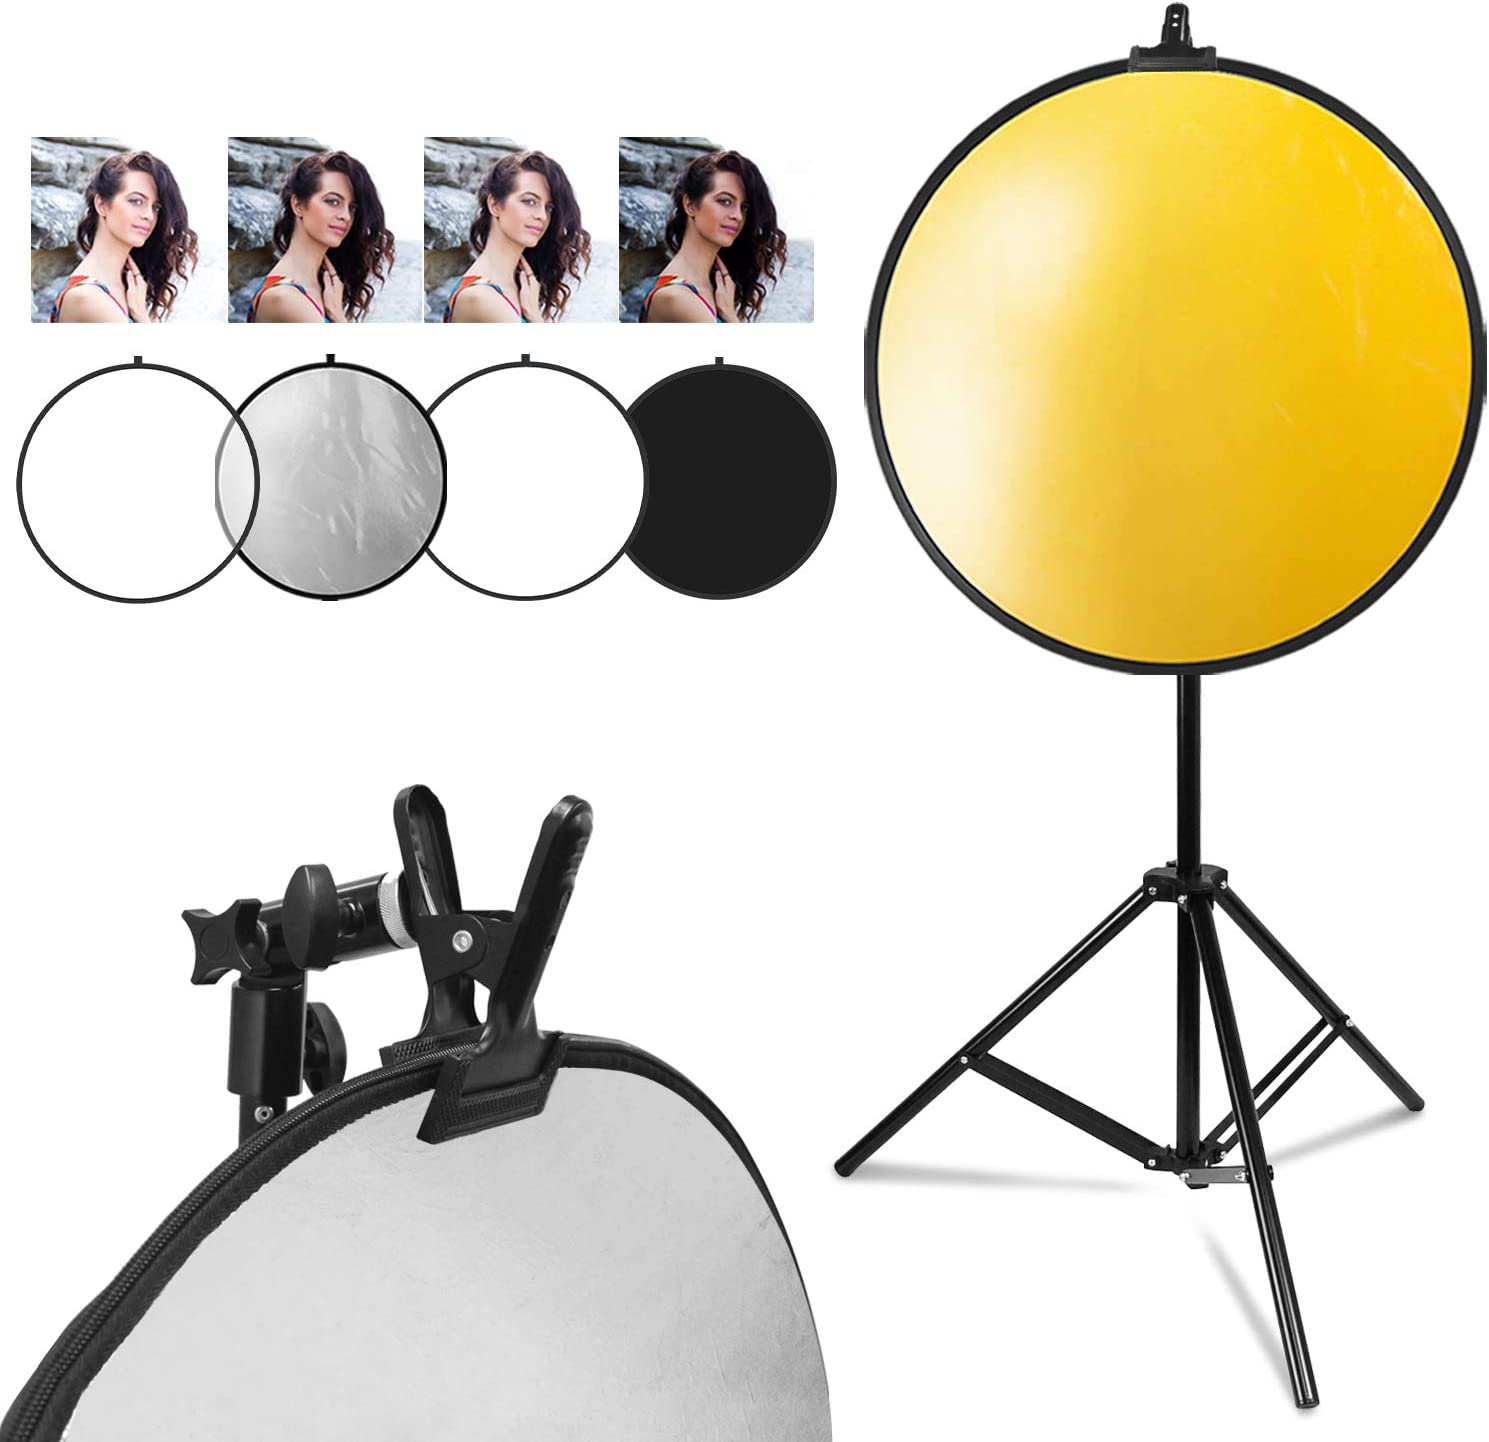 AGG3025 LimoStudio Photo Studio Heavy Duty Metal Clamp Holder with 5//8 Light Stand Attachment for Reflector